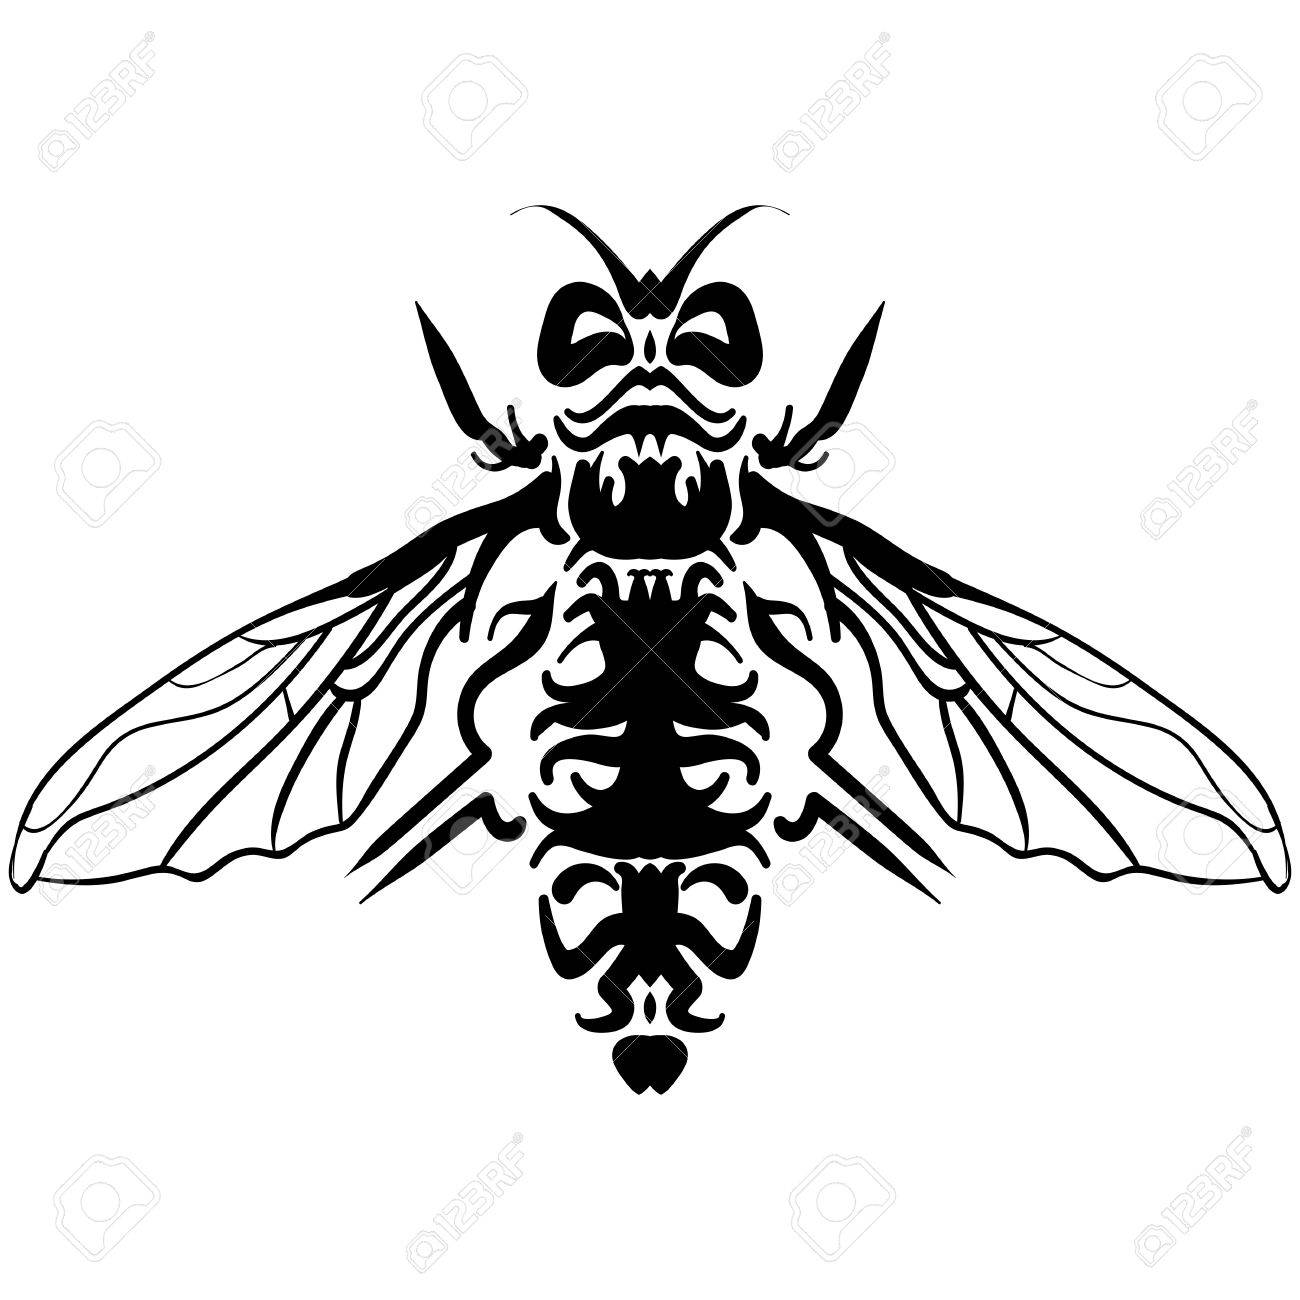 1300x1300 Hand Drawn Sketch Of Fly. Doodle Line Graphic Design. Black